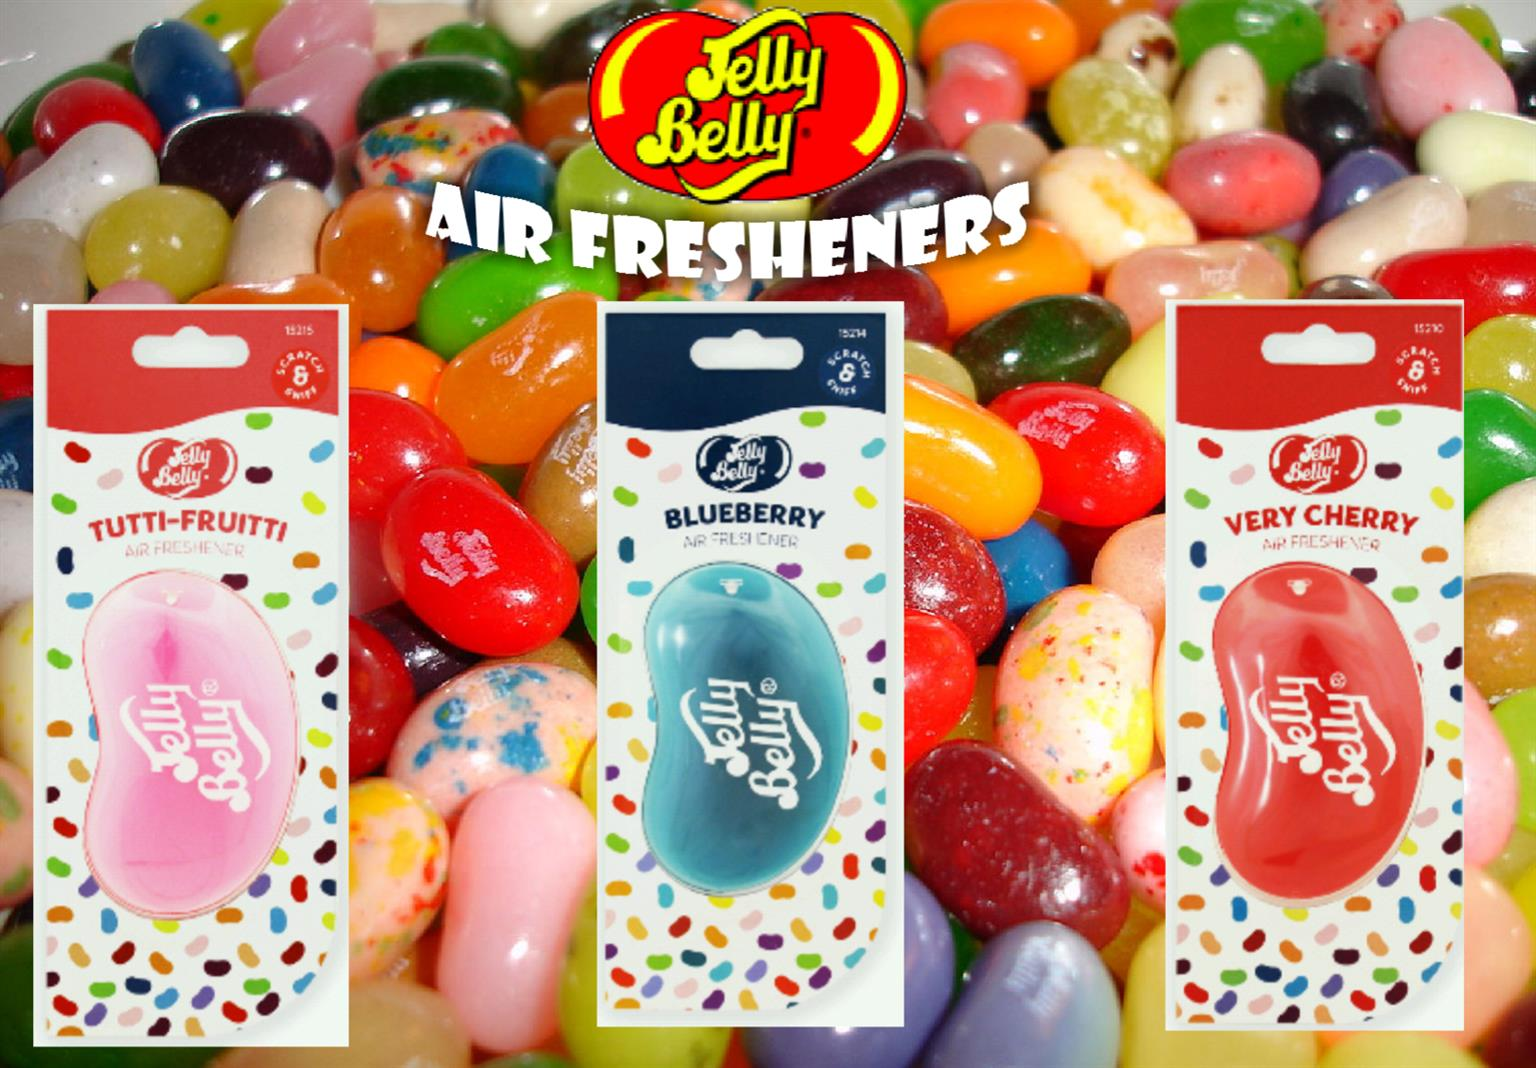 Imported Jelly Belly Air Freshners